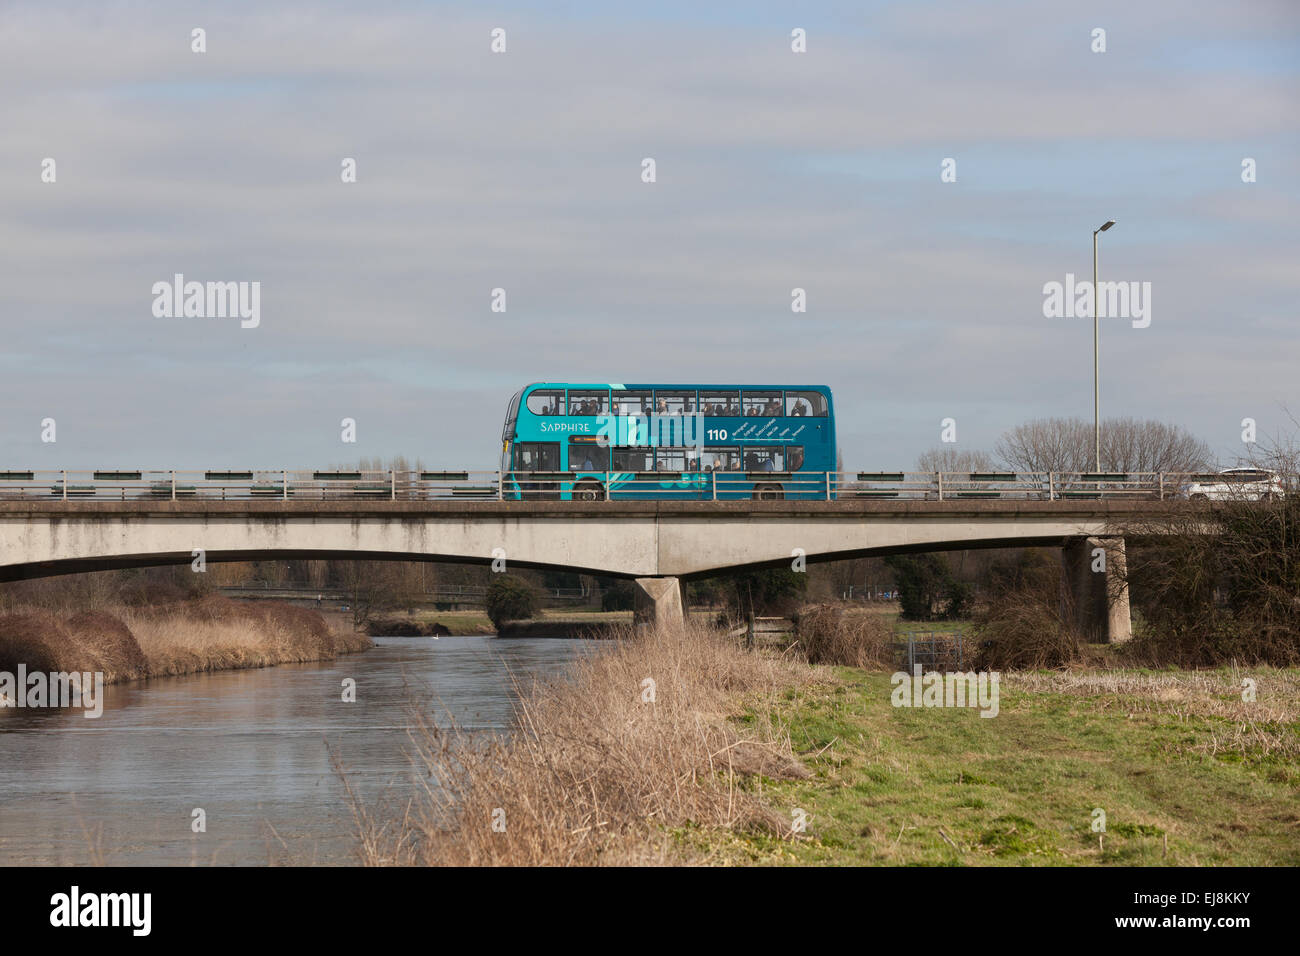 An Arriva Sapphire doubledecker bus in the Midlands UK. - Stock Image